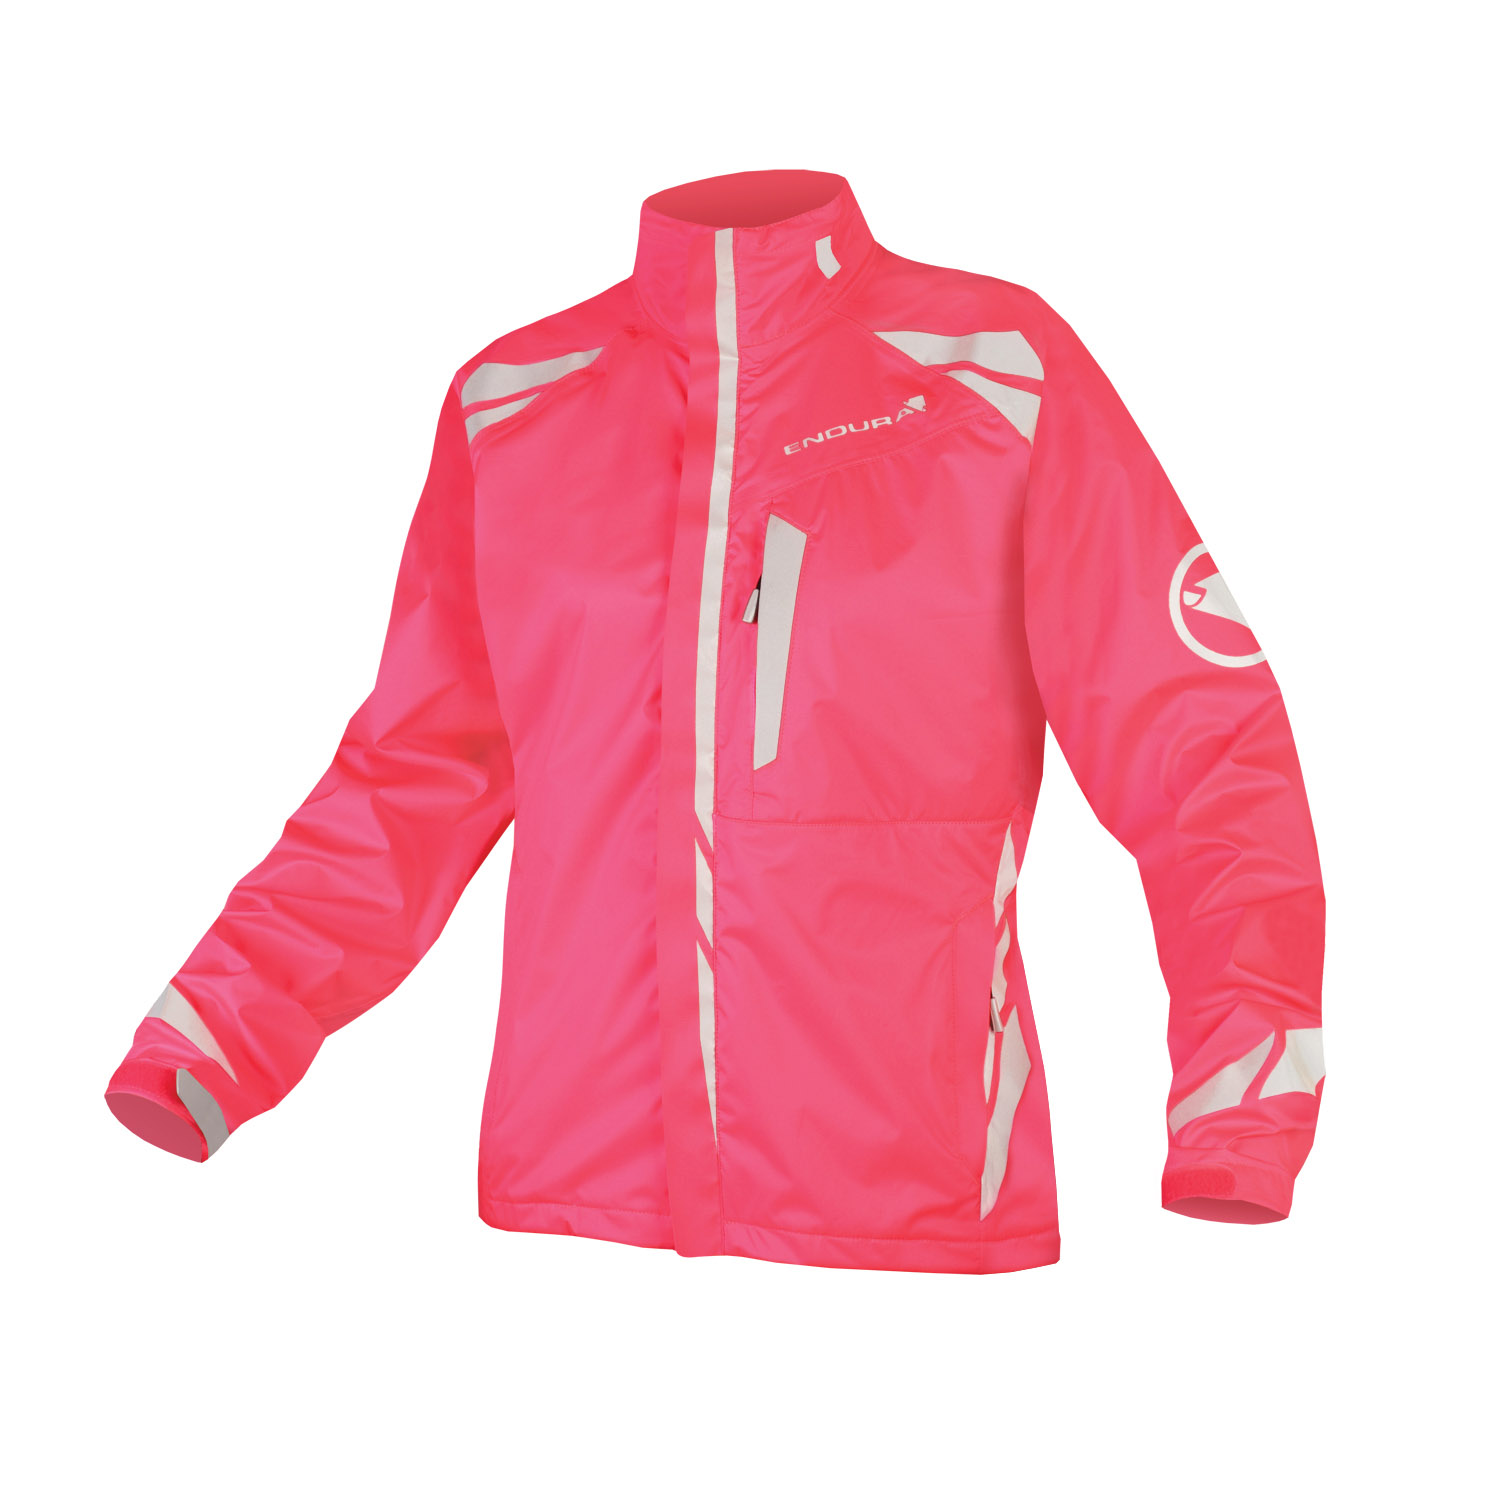 Wms Luminite 4 in 1 Jacket Hi-Viz Pink